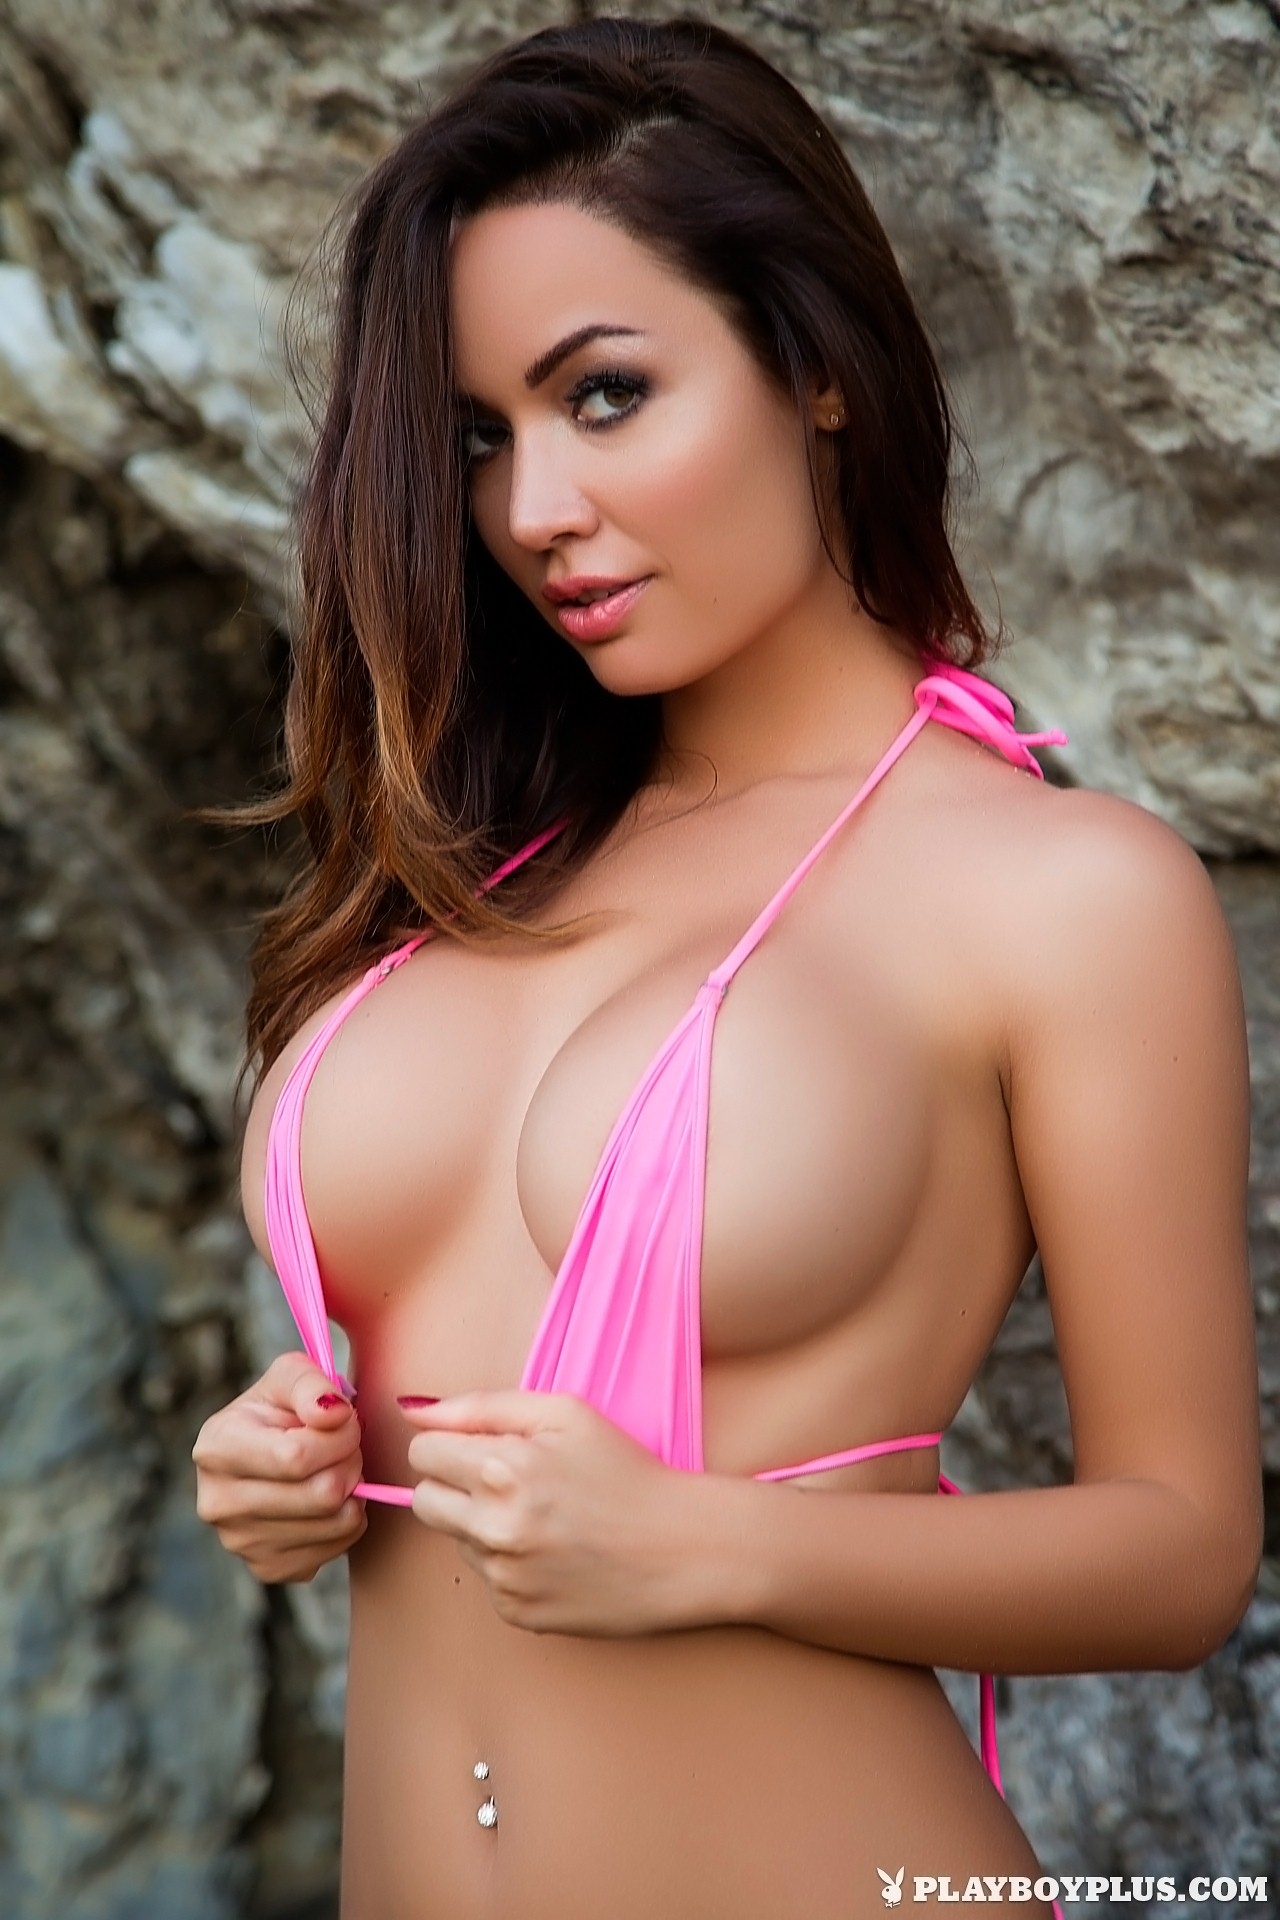 Adrienn Levai nude in Pink Bikini for Playboy | Daily Girls @ Female Update